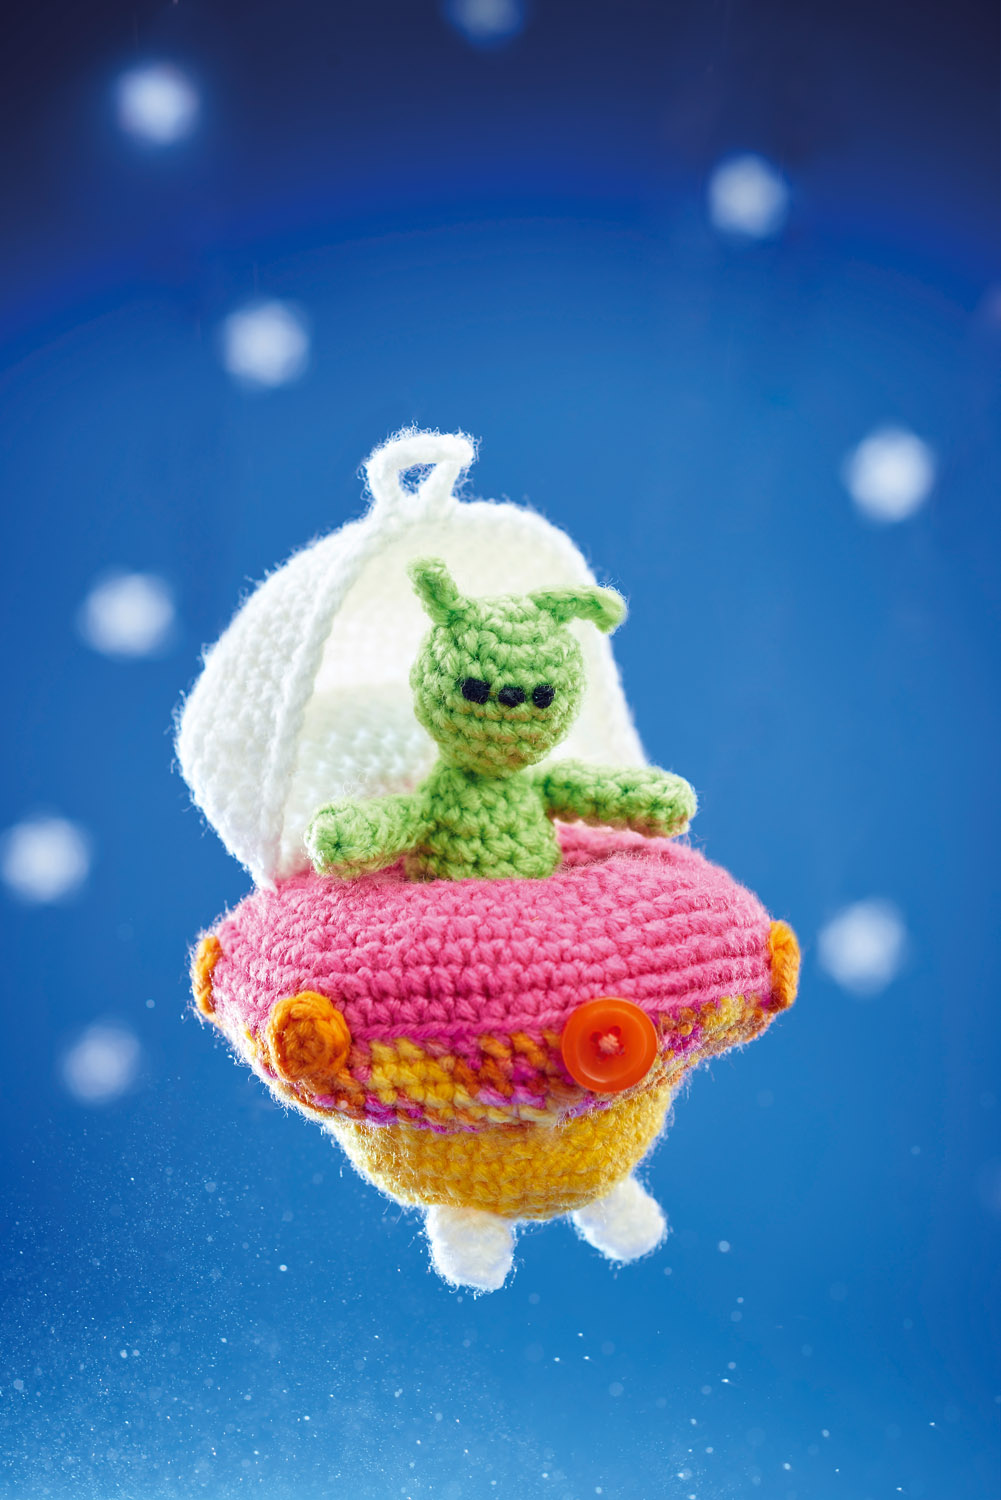 Amigurumi Today - Page 10 of 11 - Free amigurumi patterns and ... | 1500x1001